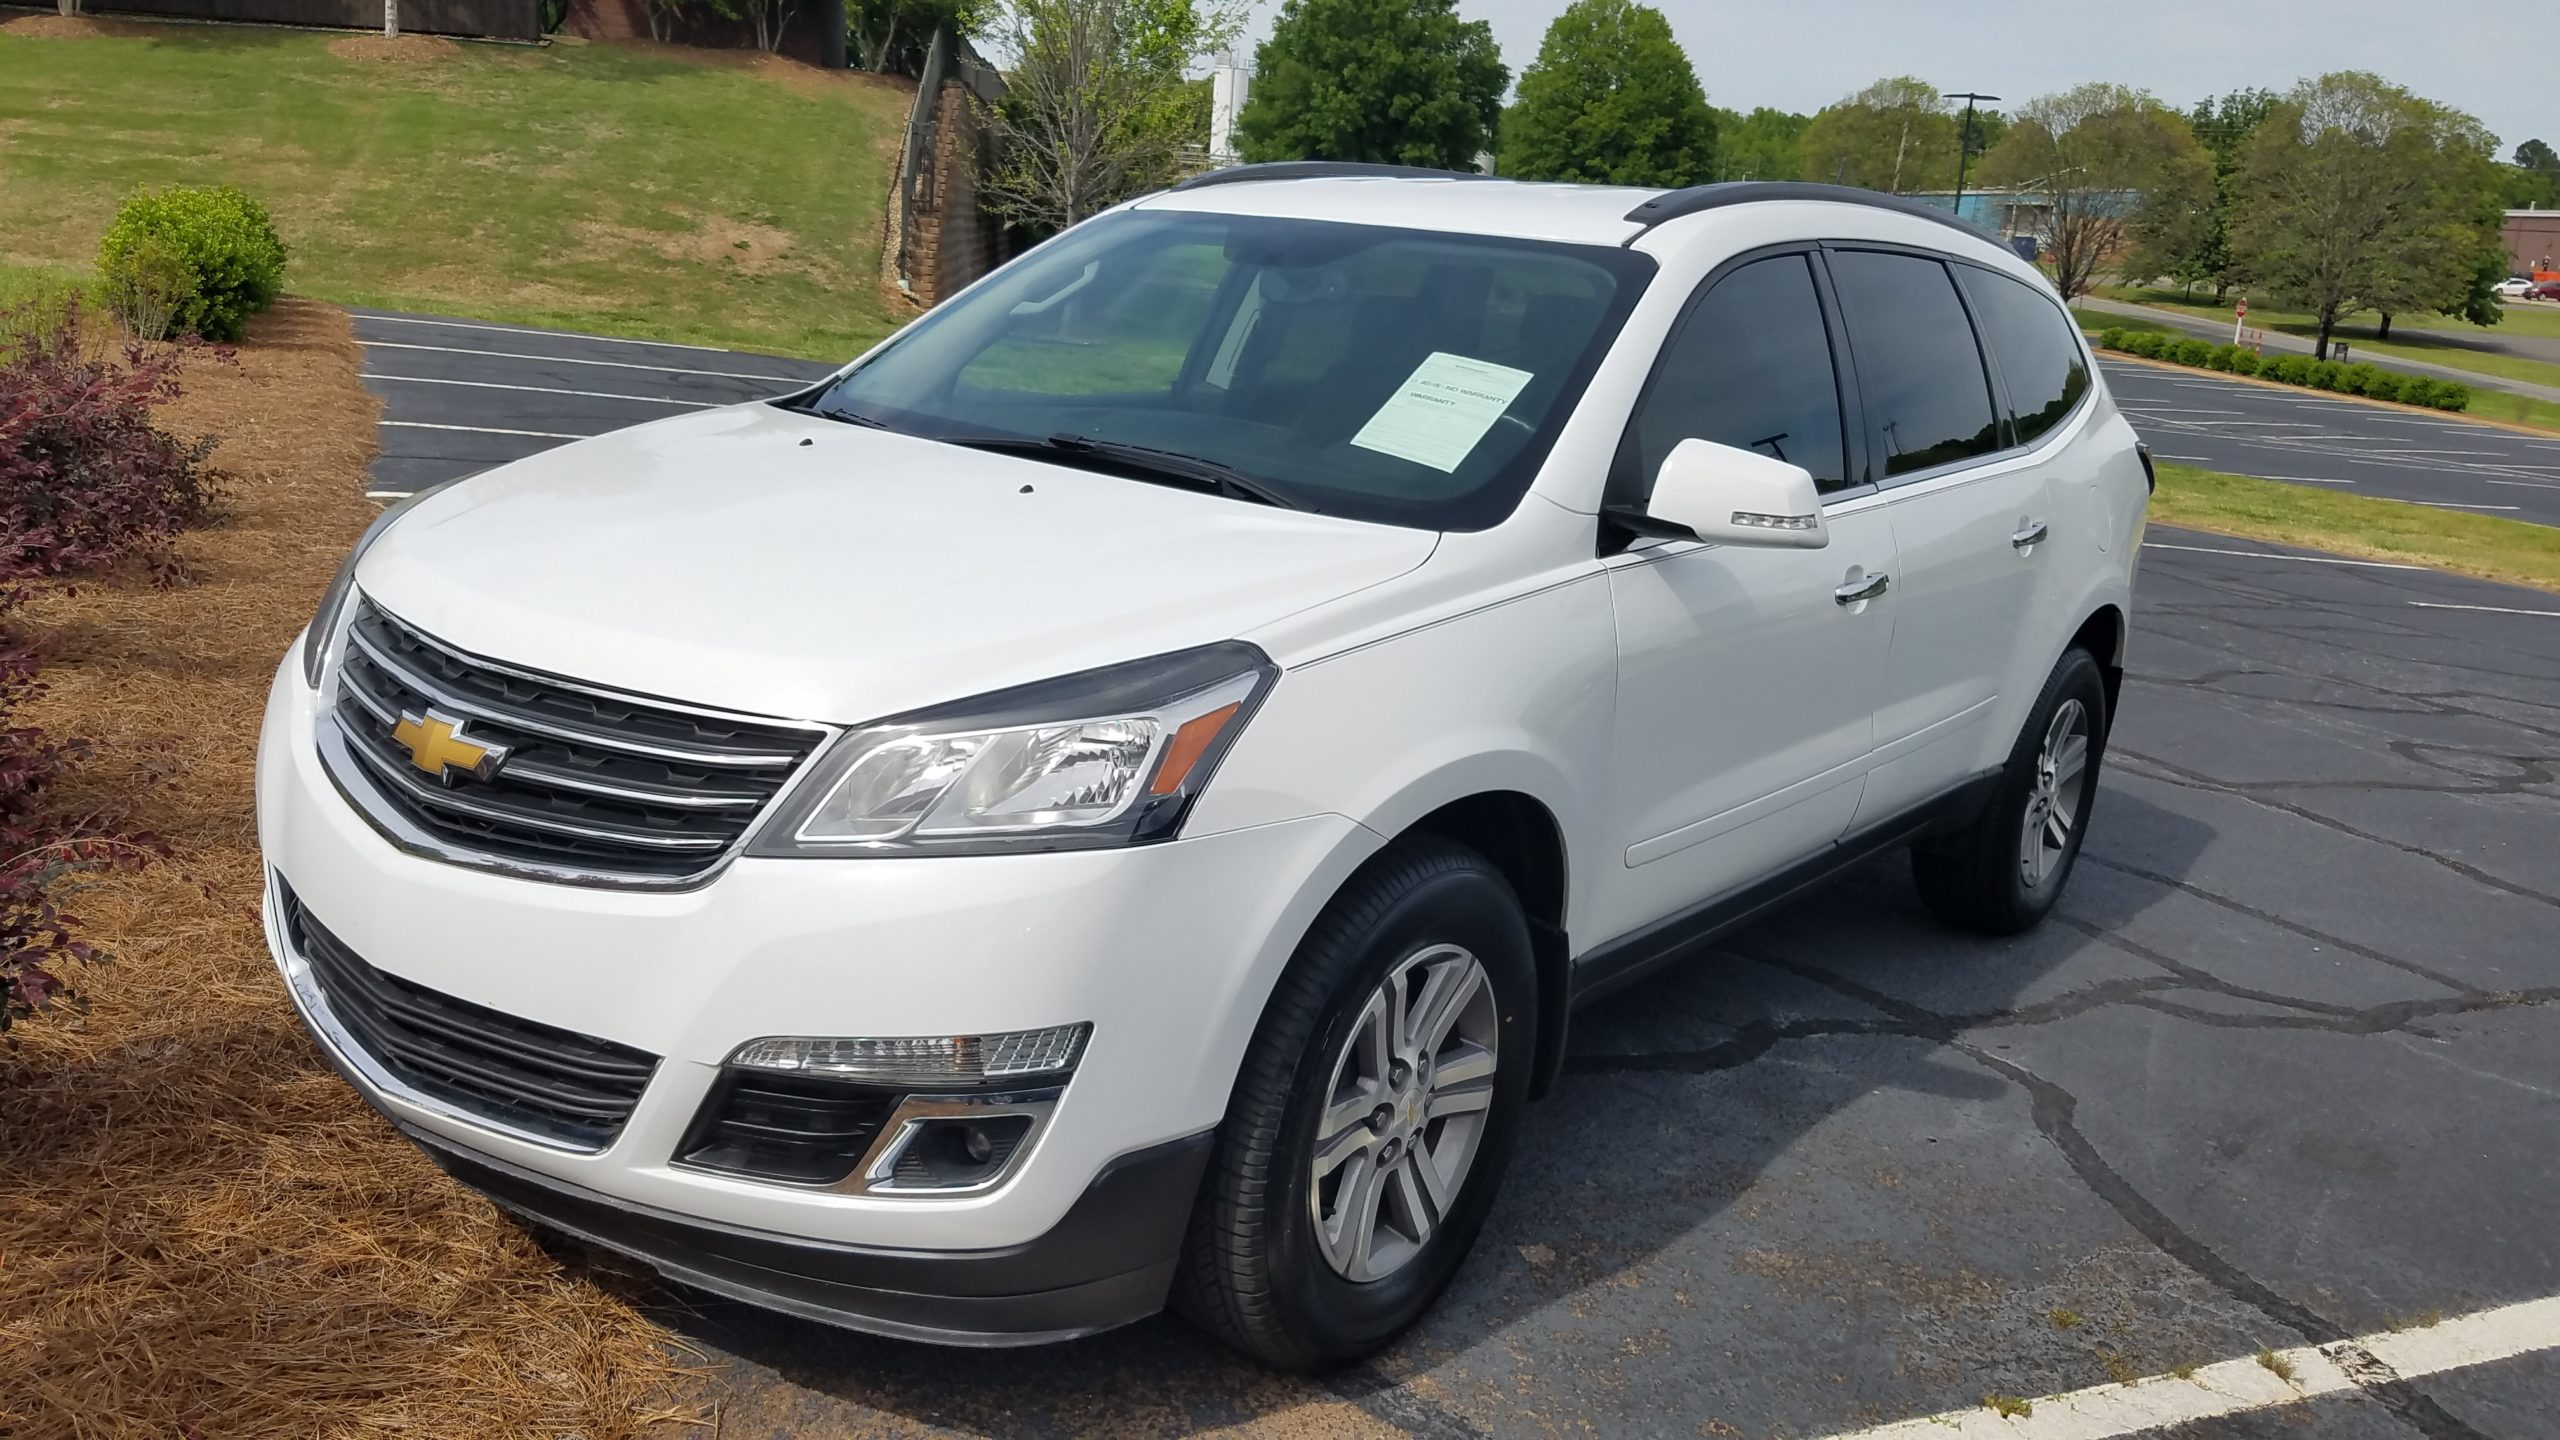 2016 Chevy Traverse 2LT